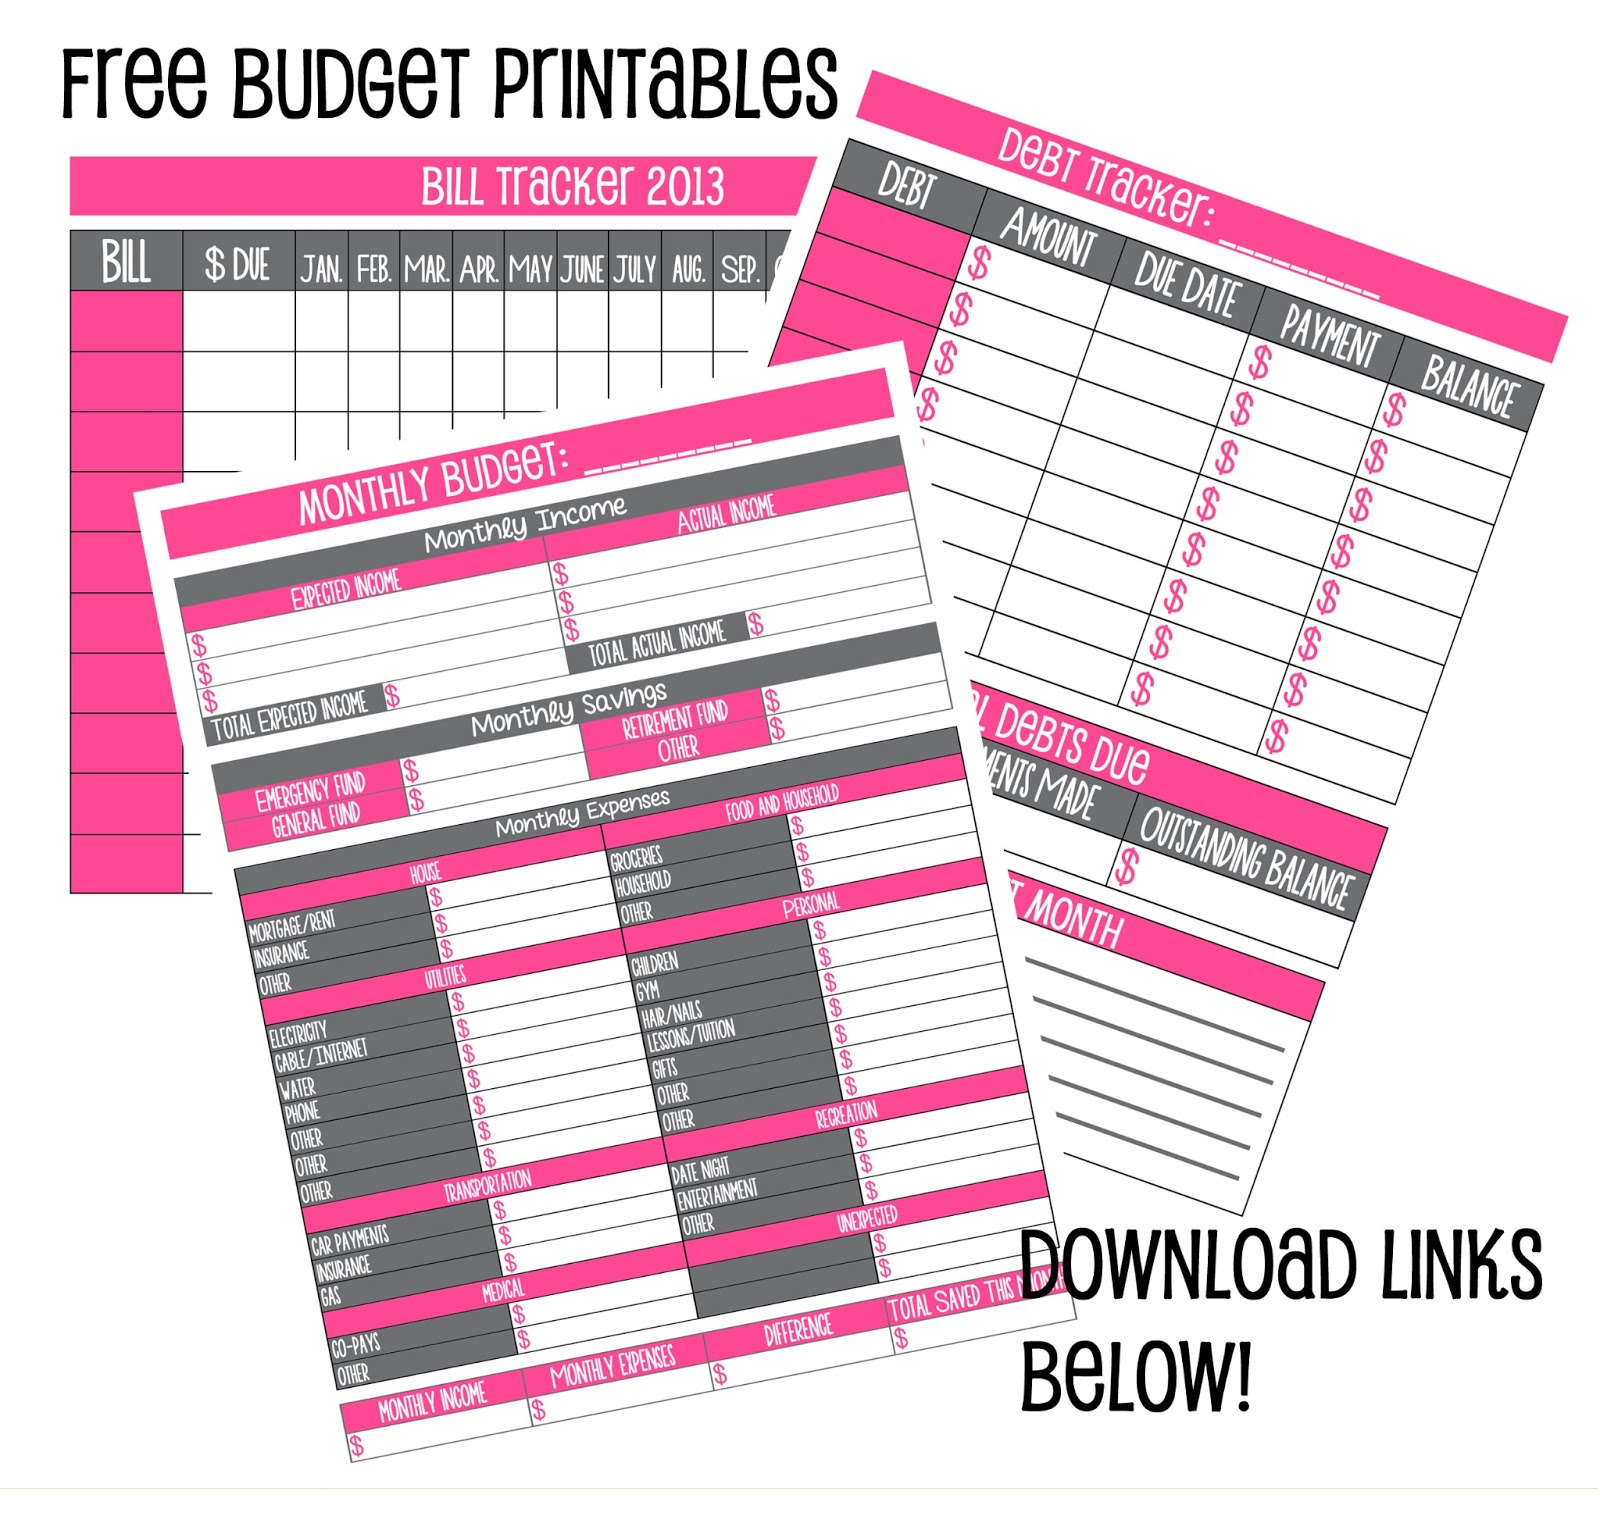 Budget Printable Images Gallery Category Page 1